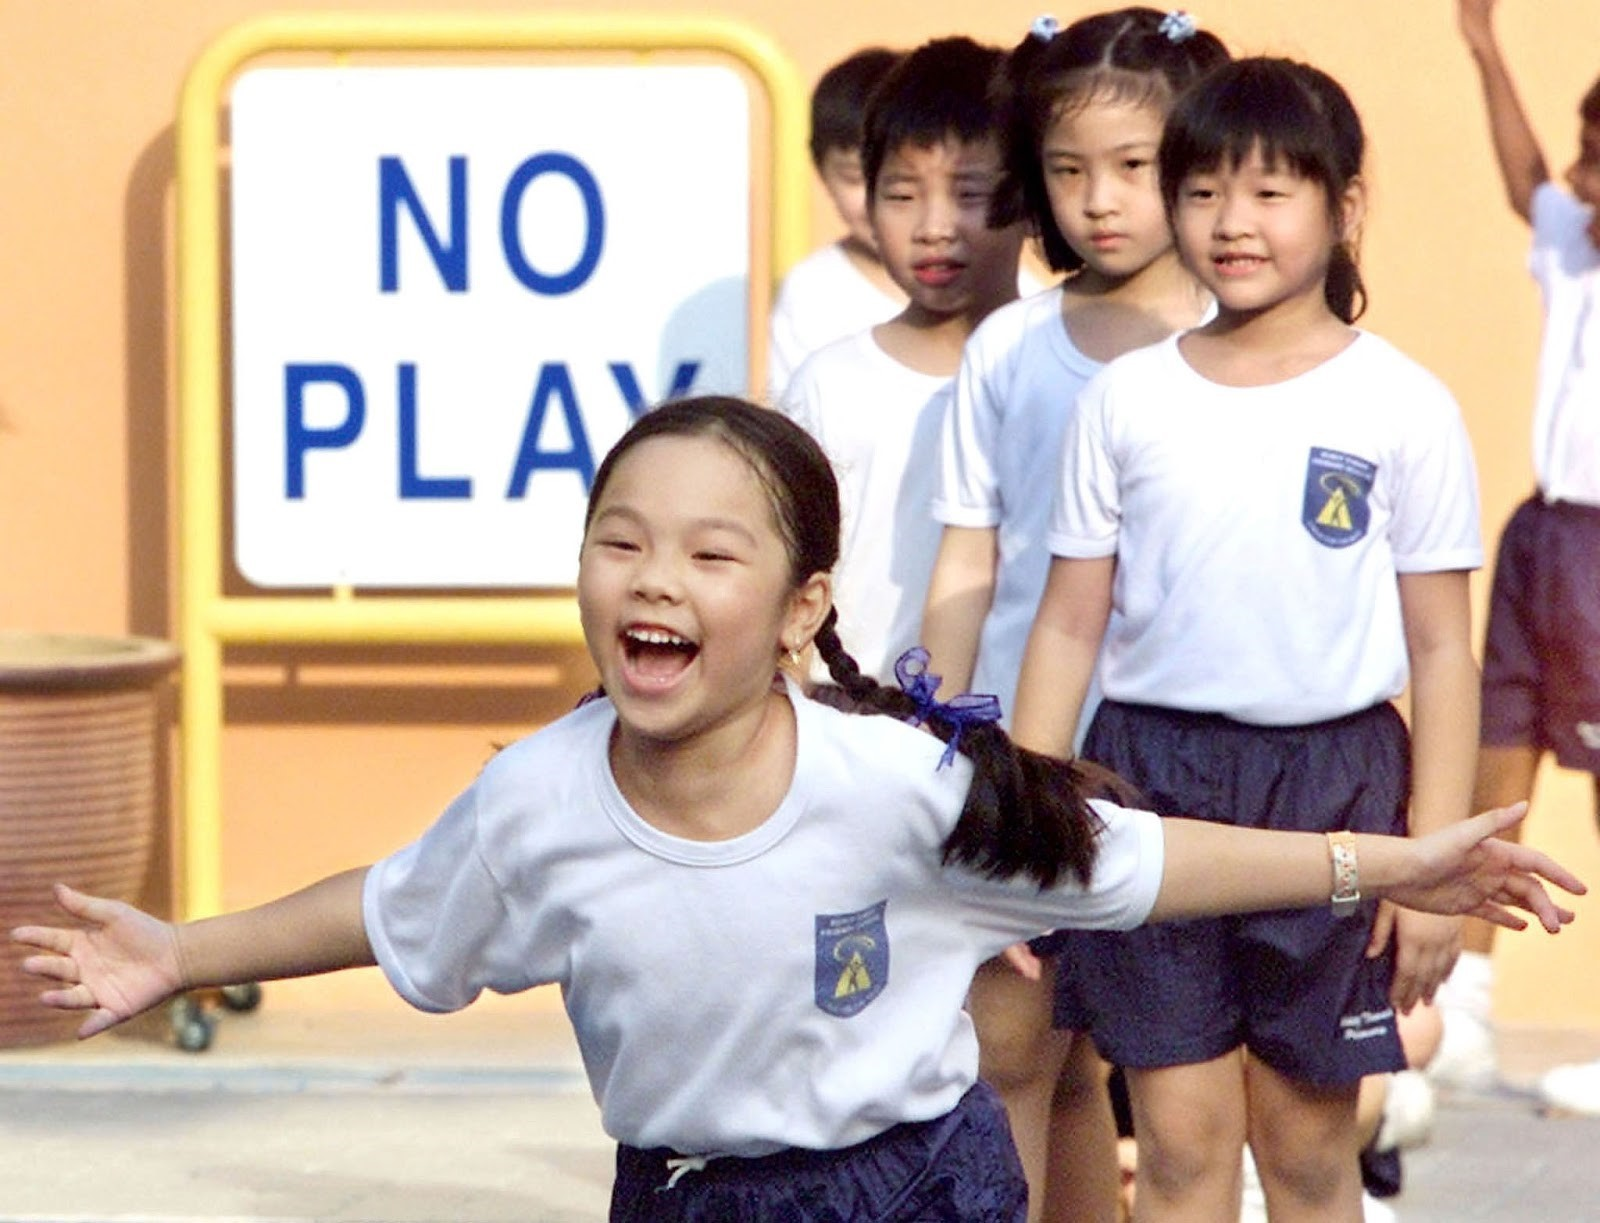 Almost all Singaporean children can expect to achieve basic levels of proficiency at school.